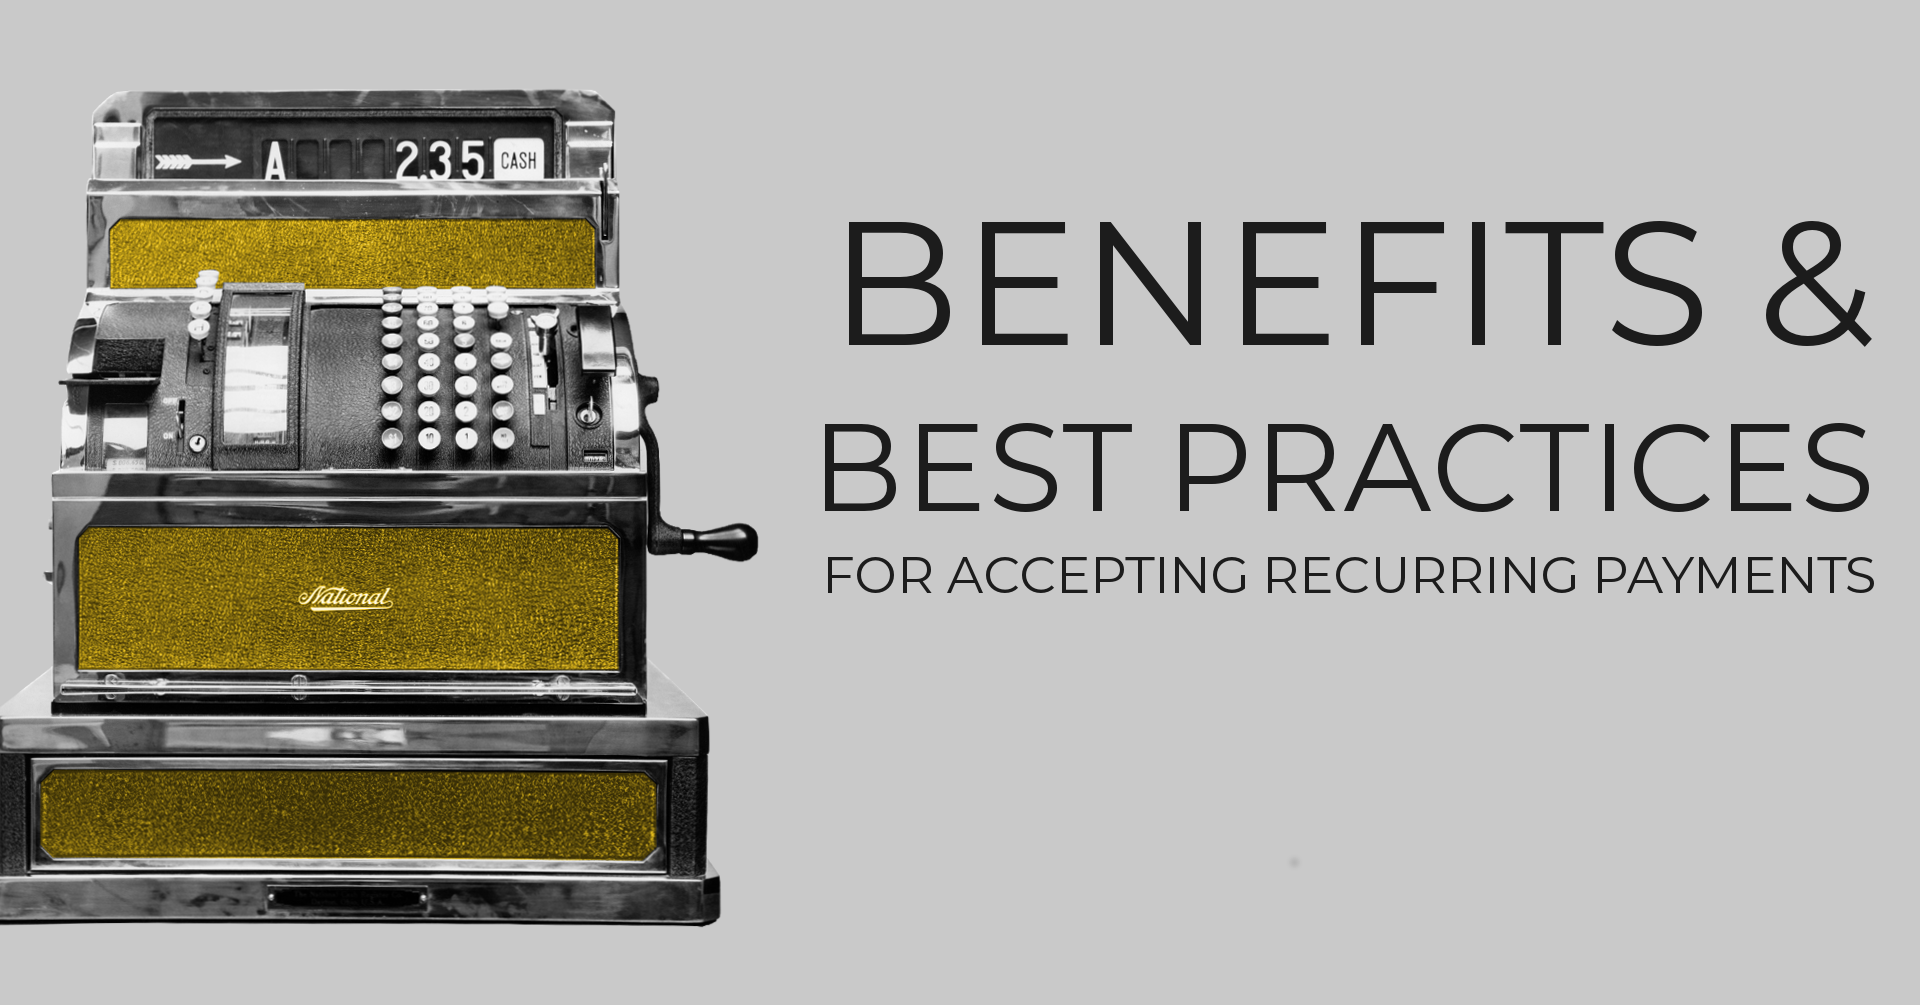 Benefits & Best Practices For Accepting Recurring Payments